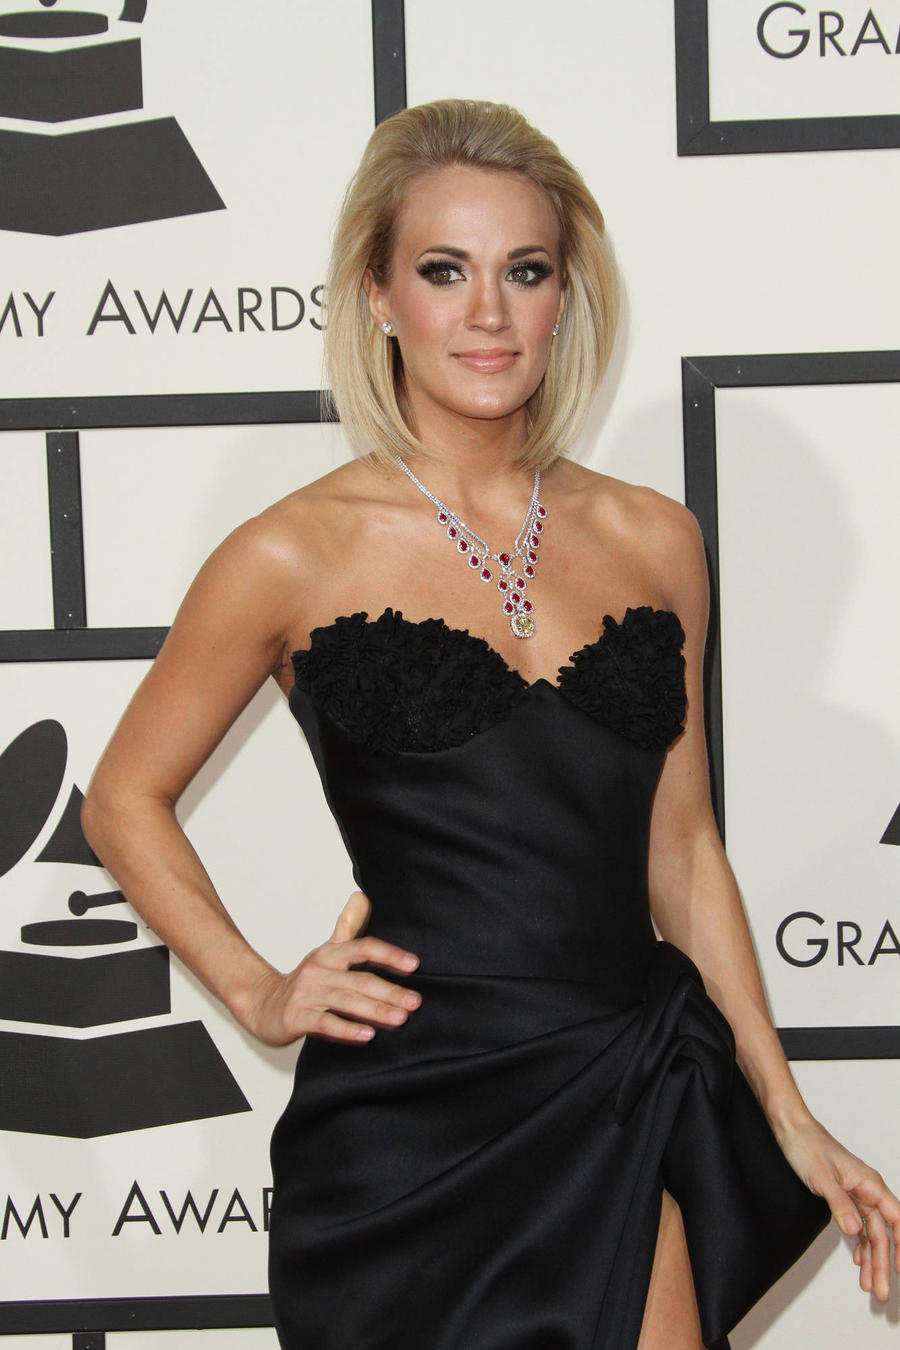 Carrie Underwood Flaunts Valentine's Day Jewellery On Grammys Red Carpet